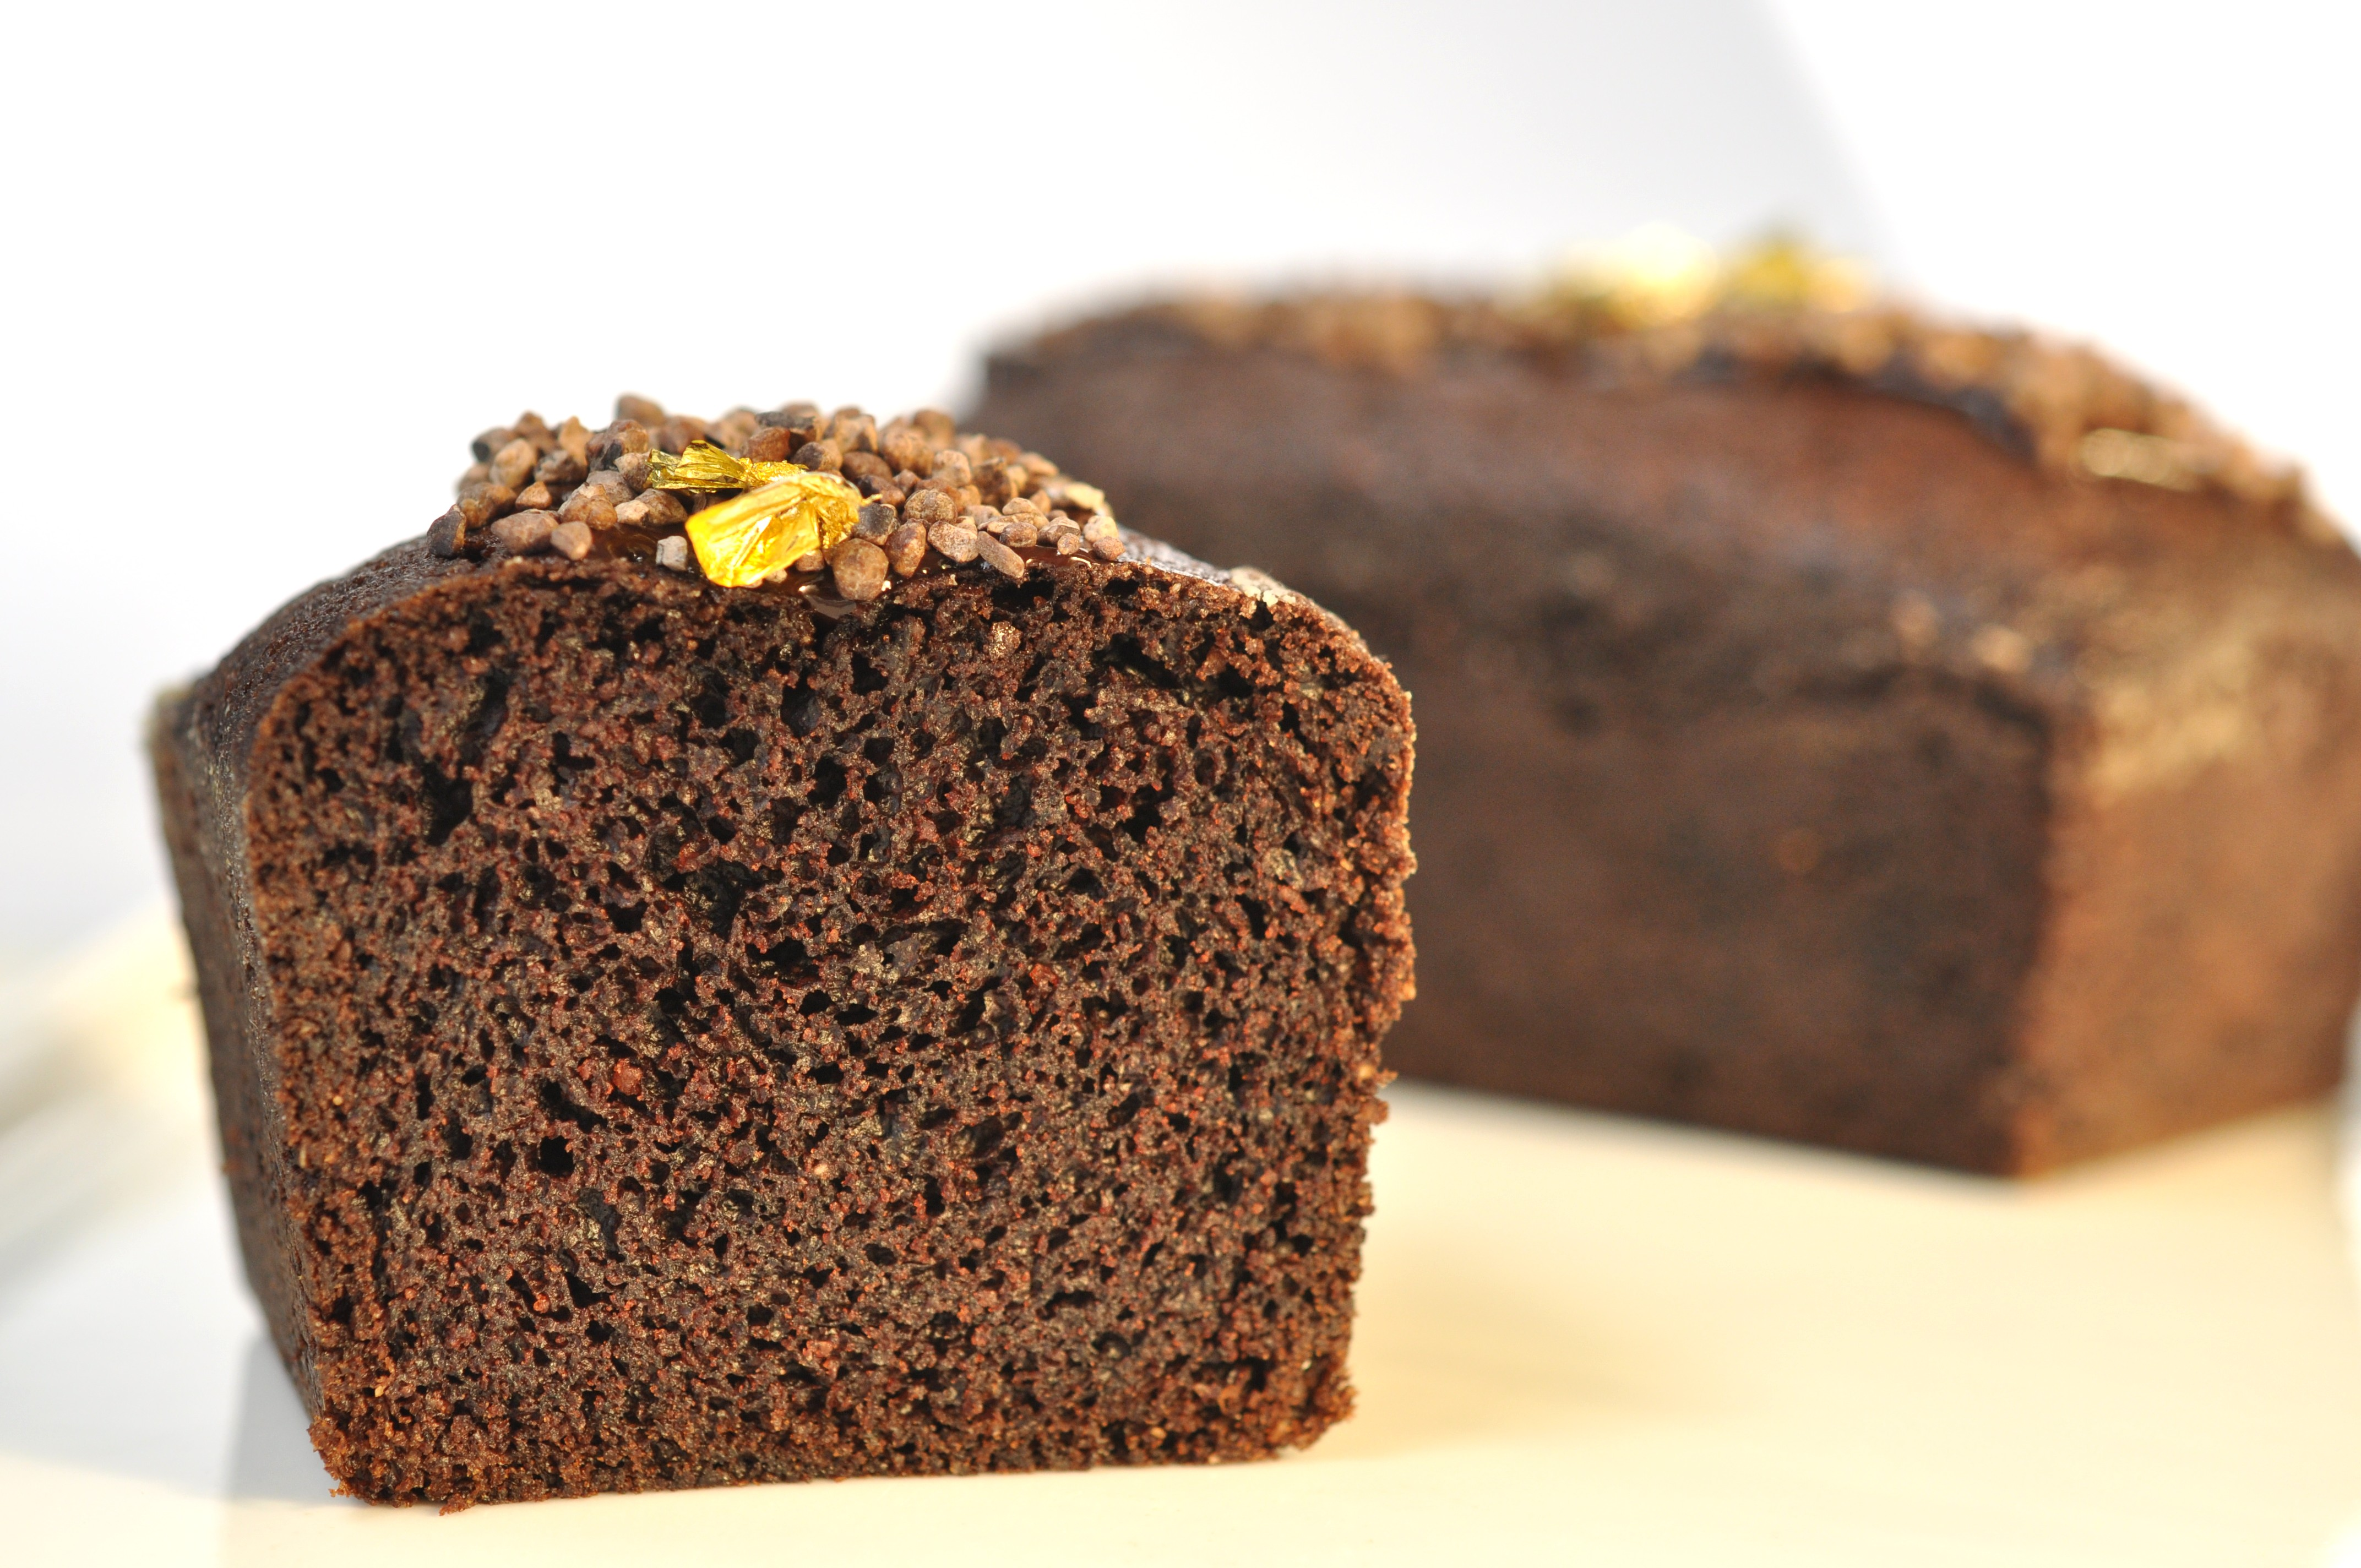 Egg free chocolate pound cake| Pastry Chef- Author Eddy Van Damme